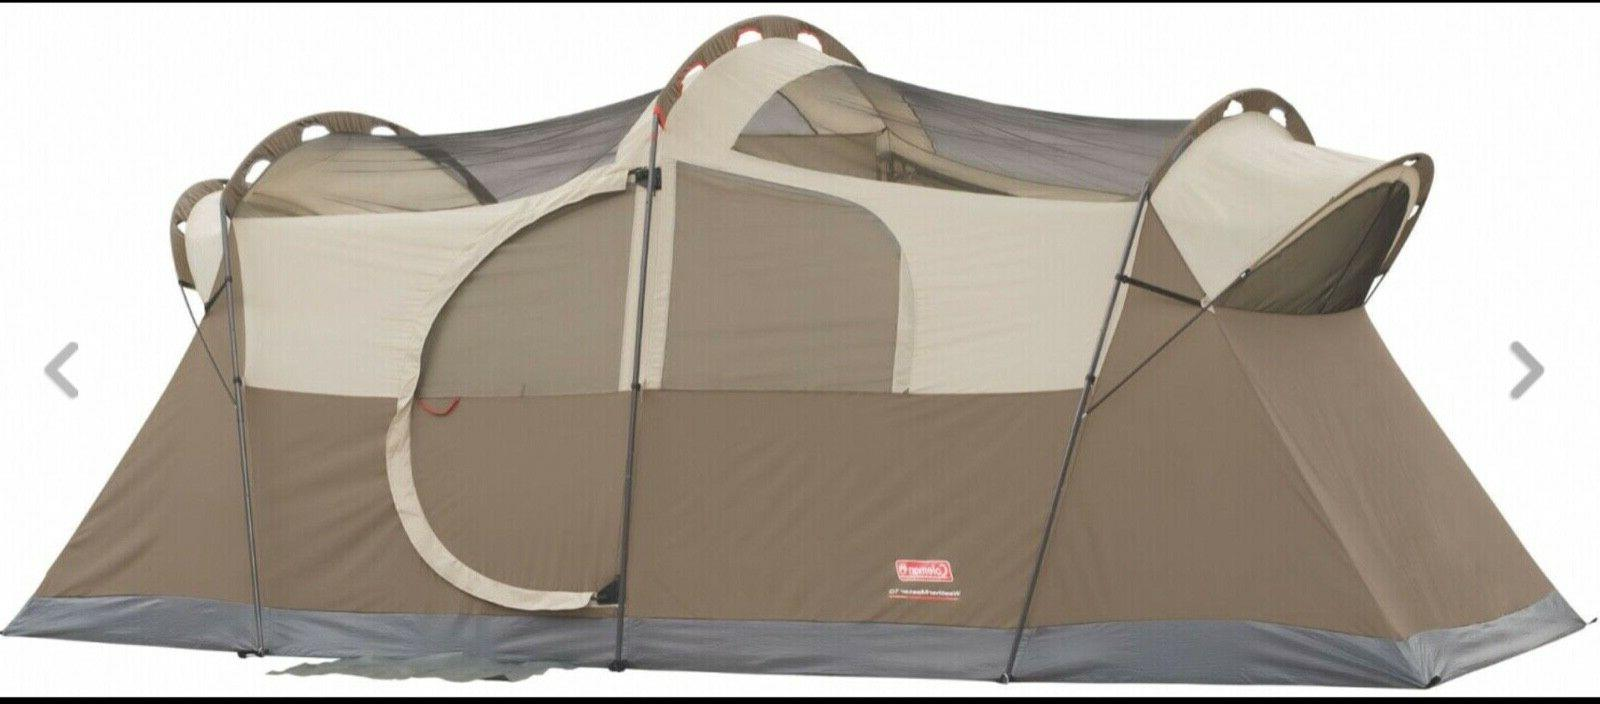 Coleman 10 Dome Tent Large Setup Outdoor Sleeping Unit (Ne